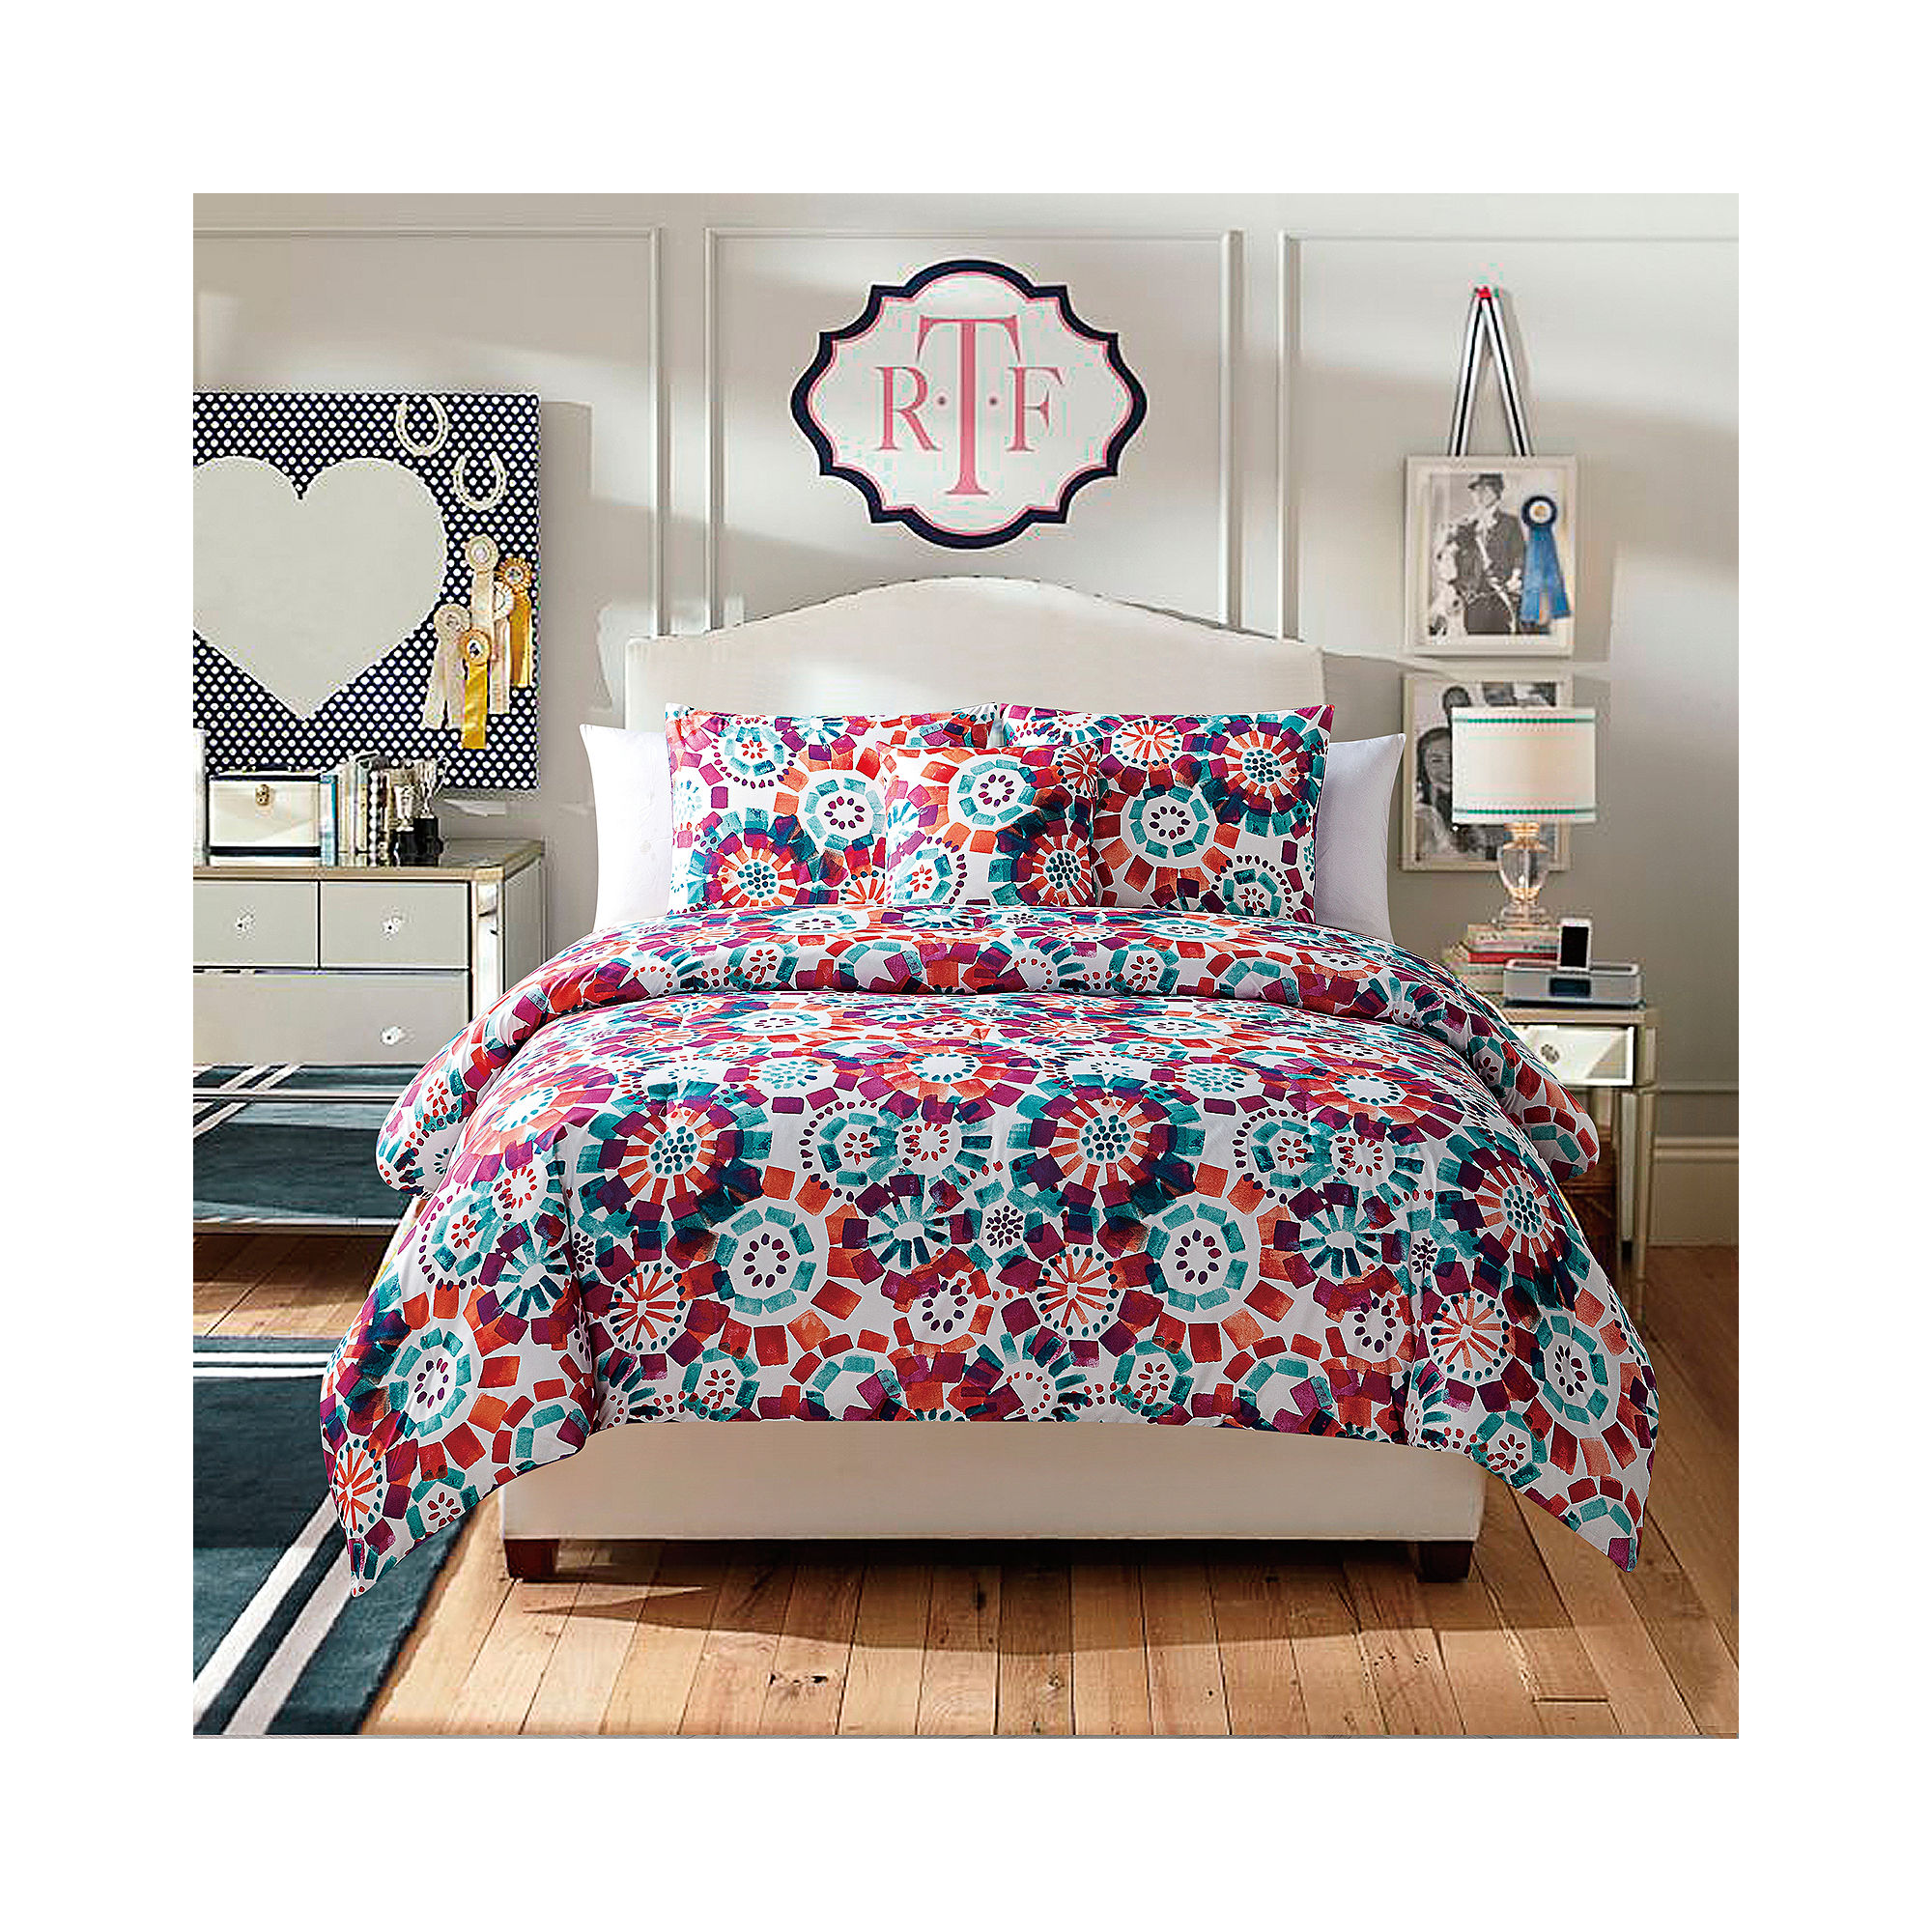 VCNY Fanfare 4-pc. Twin Reversible Floral Comforter Set